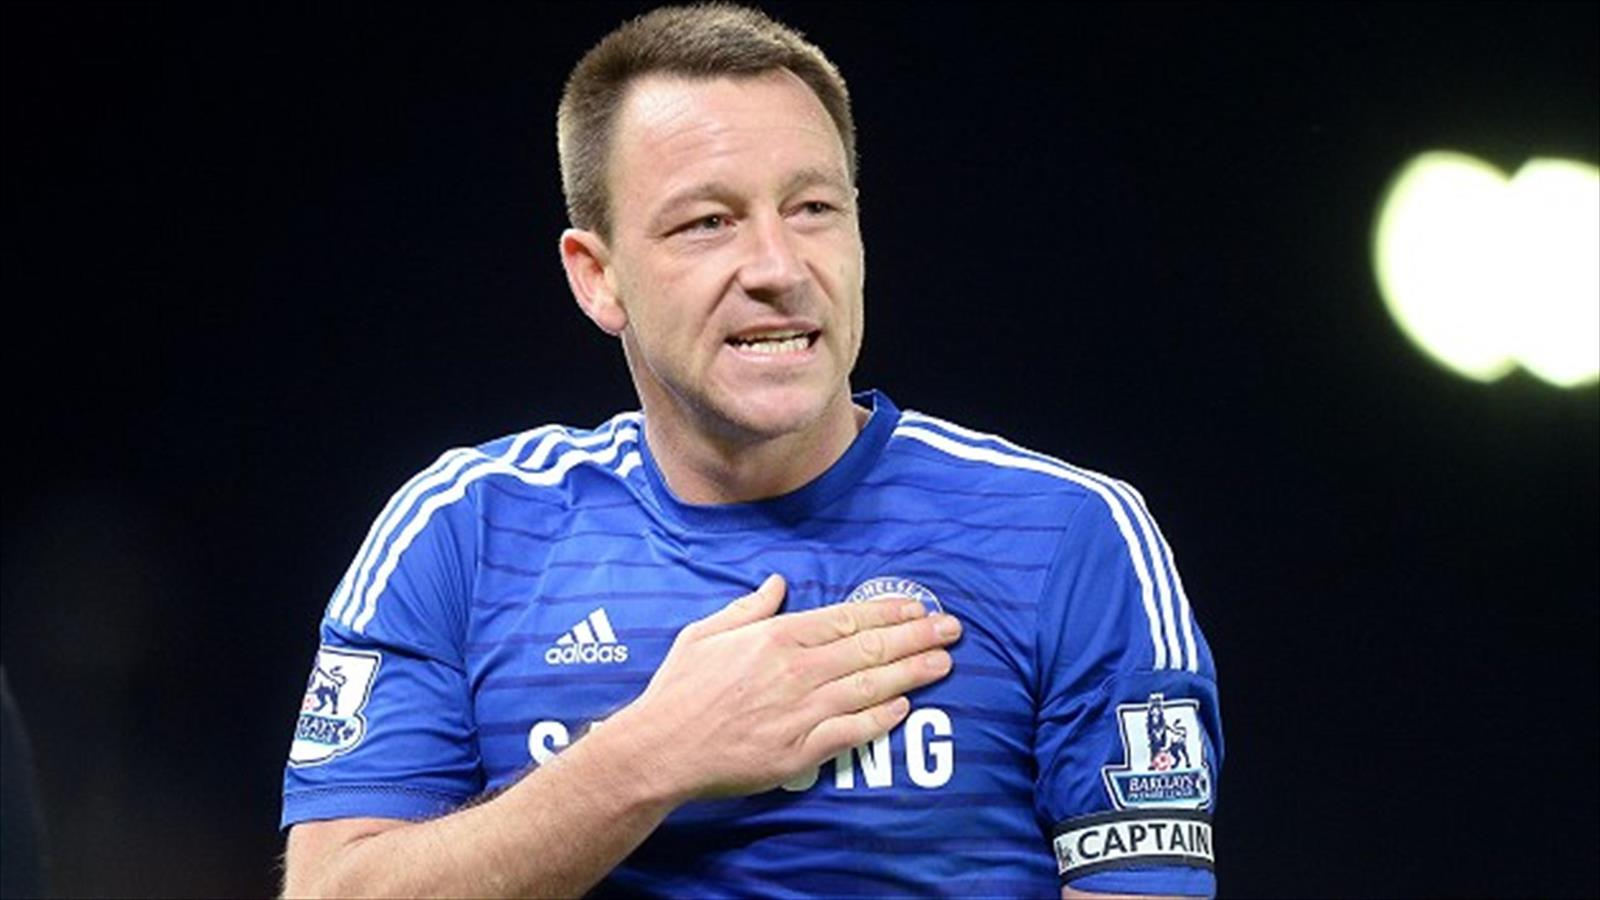 John Terry - sticking up for fans